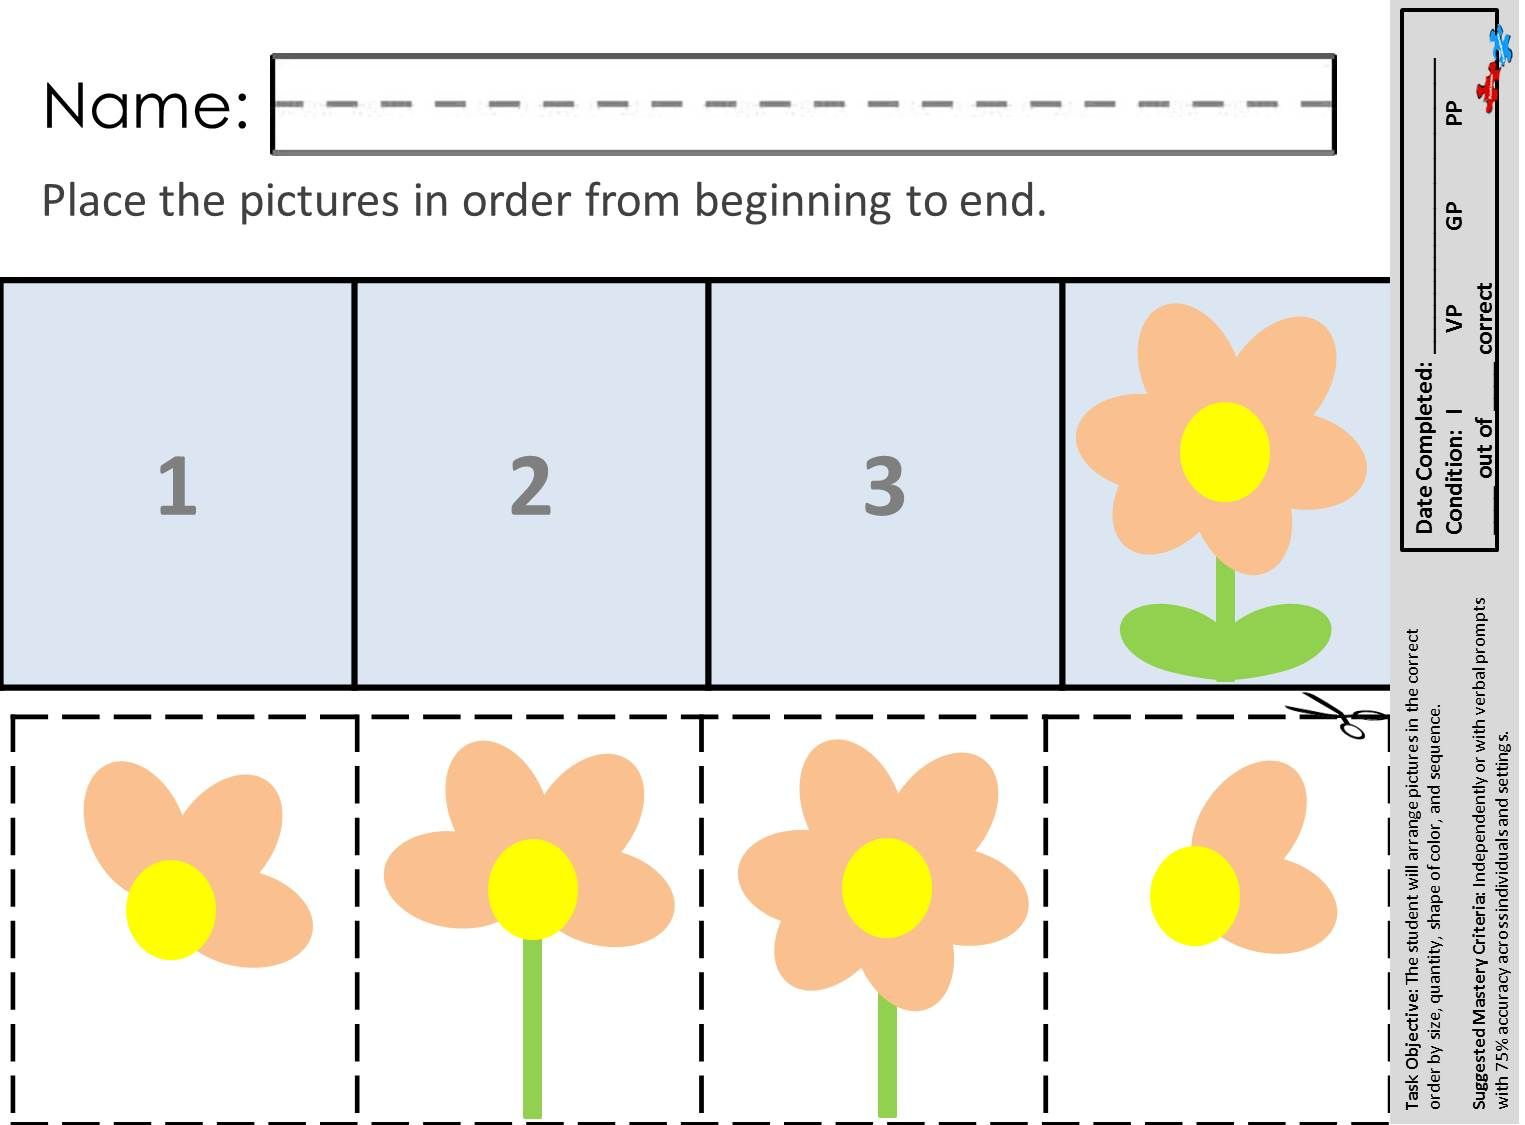 Finally An Easy Way To Practice Seriation Skills Find These And Other Great Printables At Autism Autism Teaching Speech Therapy Worksheets Autism Worksheets